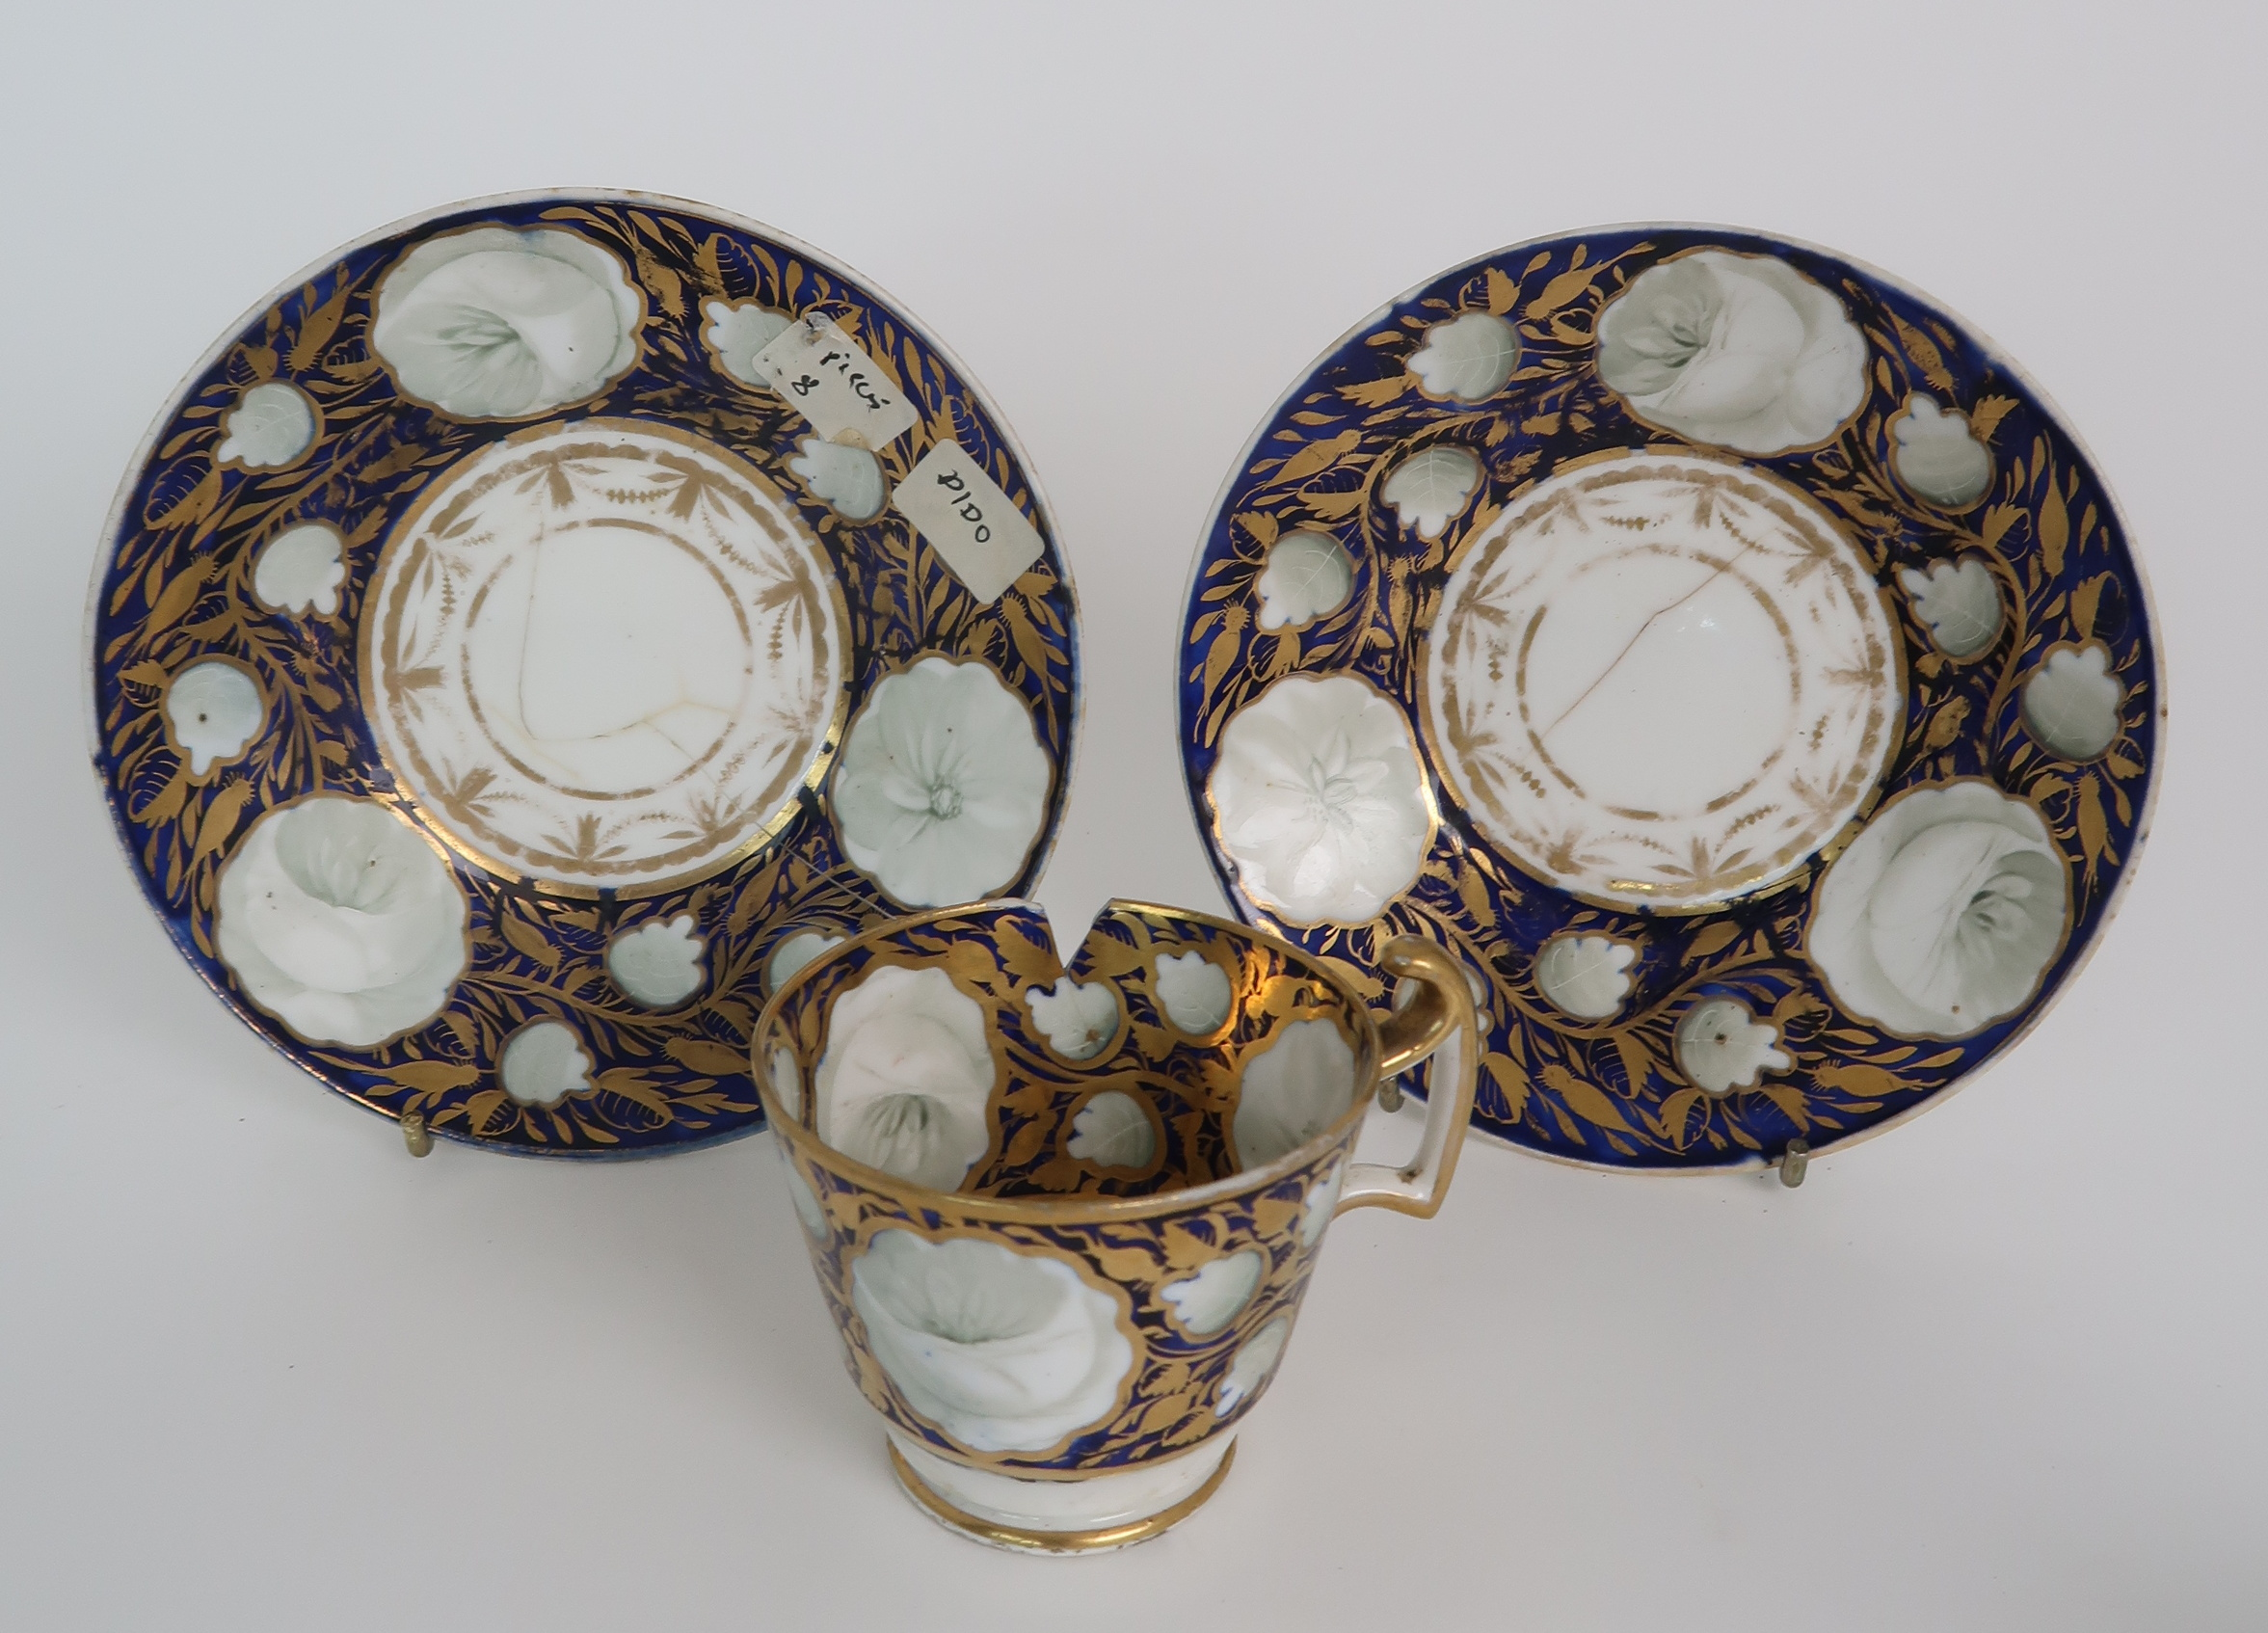 A COLLECTION OF 19TH CENTURY ENGLISH BLUE AND GILT DECORATED TEA AND COFFEE WARES including a - Image 19 of 23